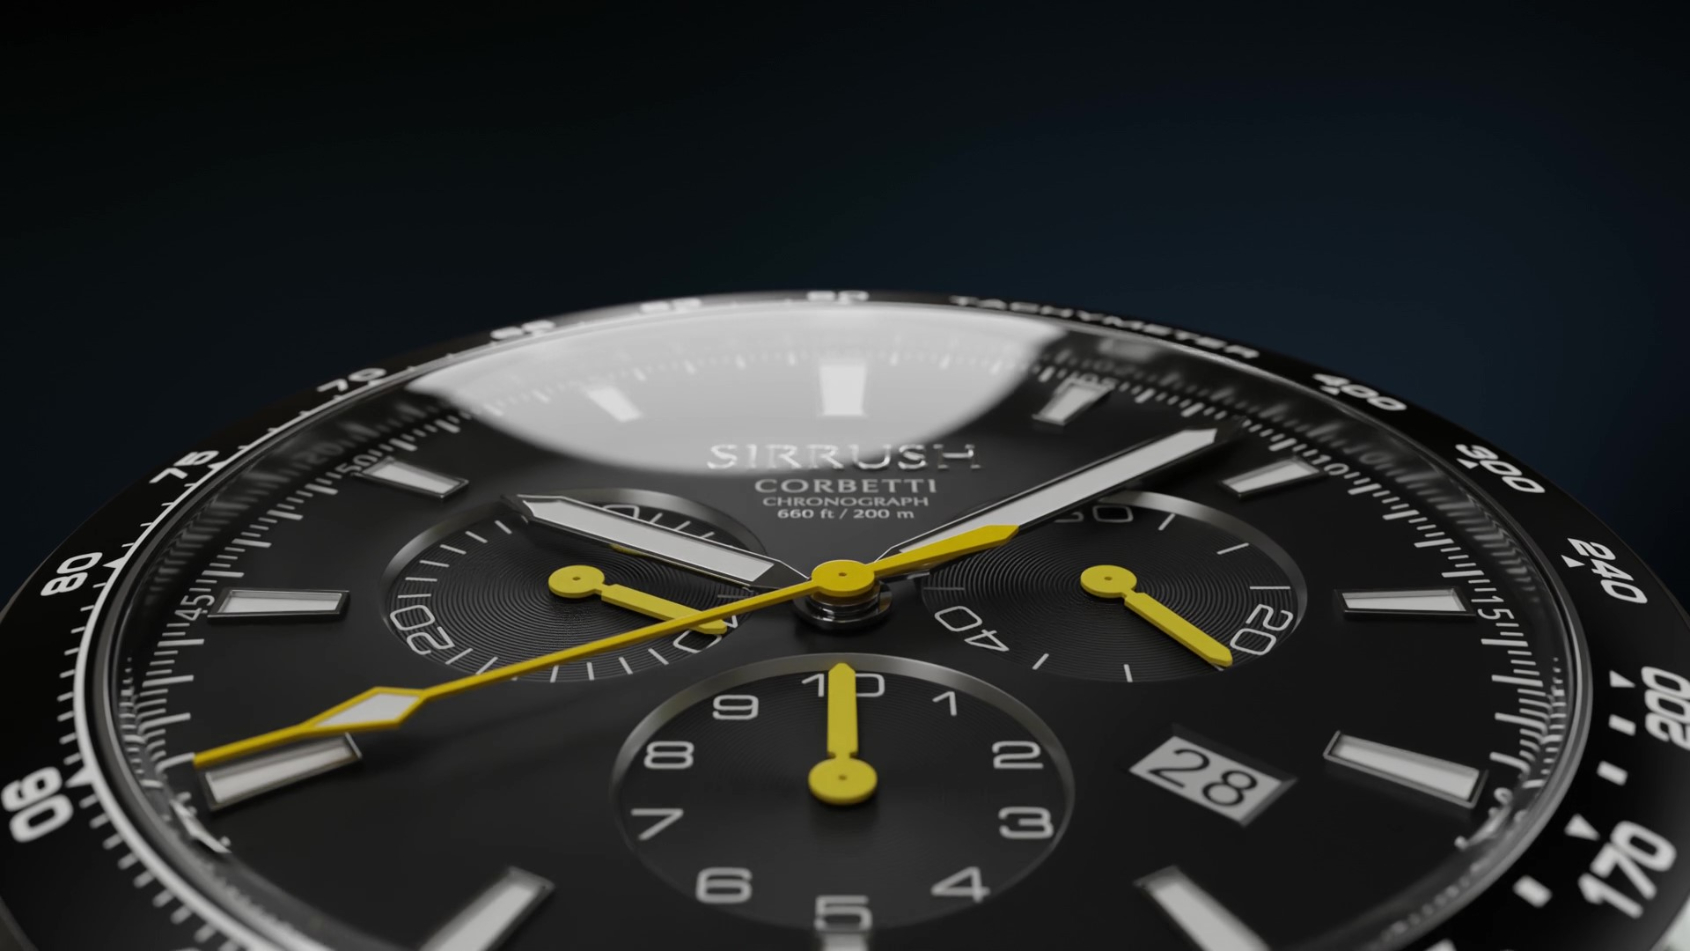 MICRO MONDAYS: The Sirrush Corbetti delivers Scandinavian flair in a classic chronograph enlivened with fresh pops of colour